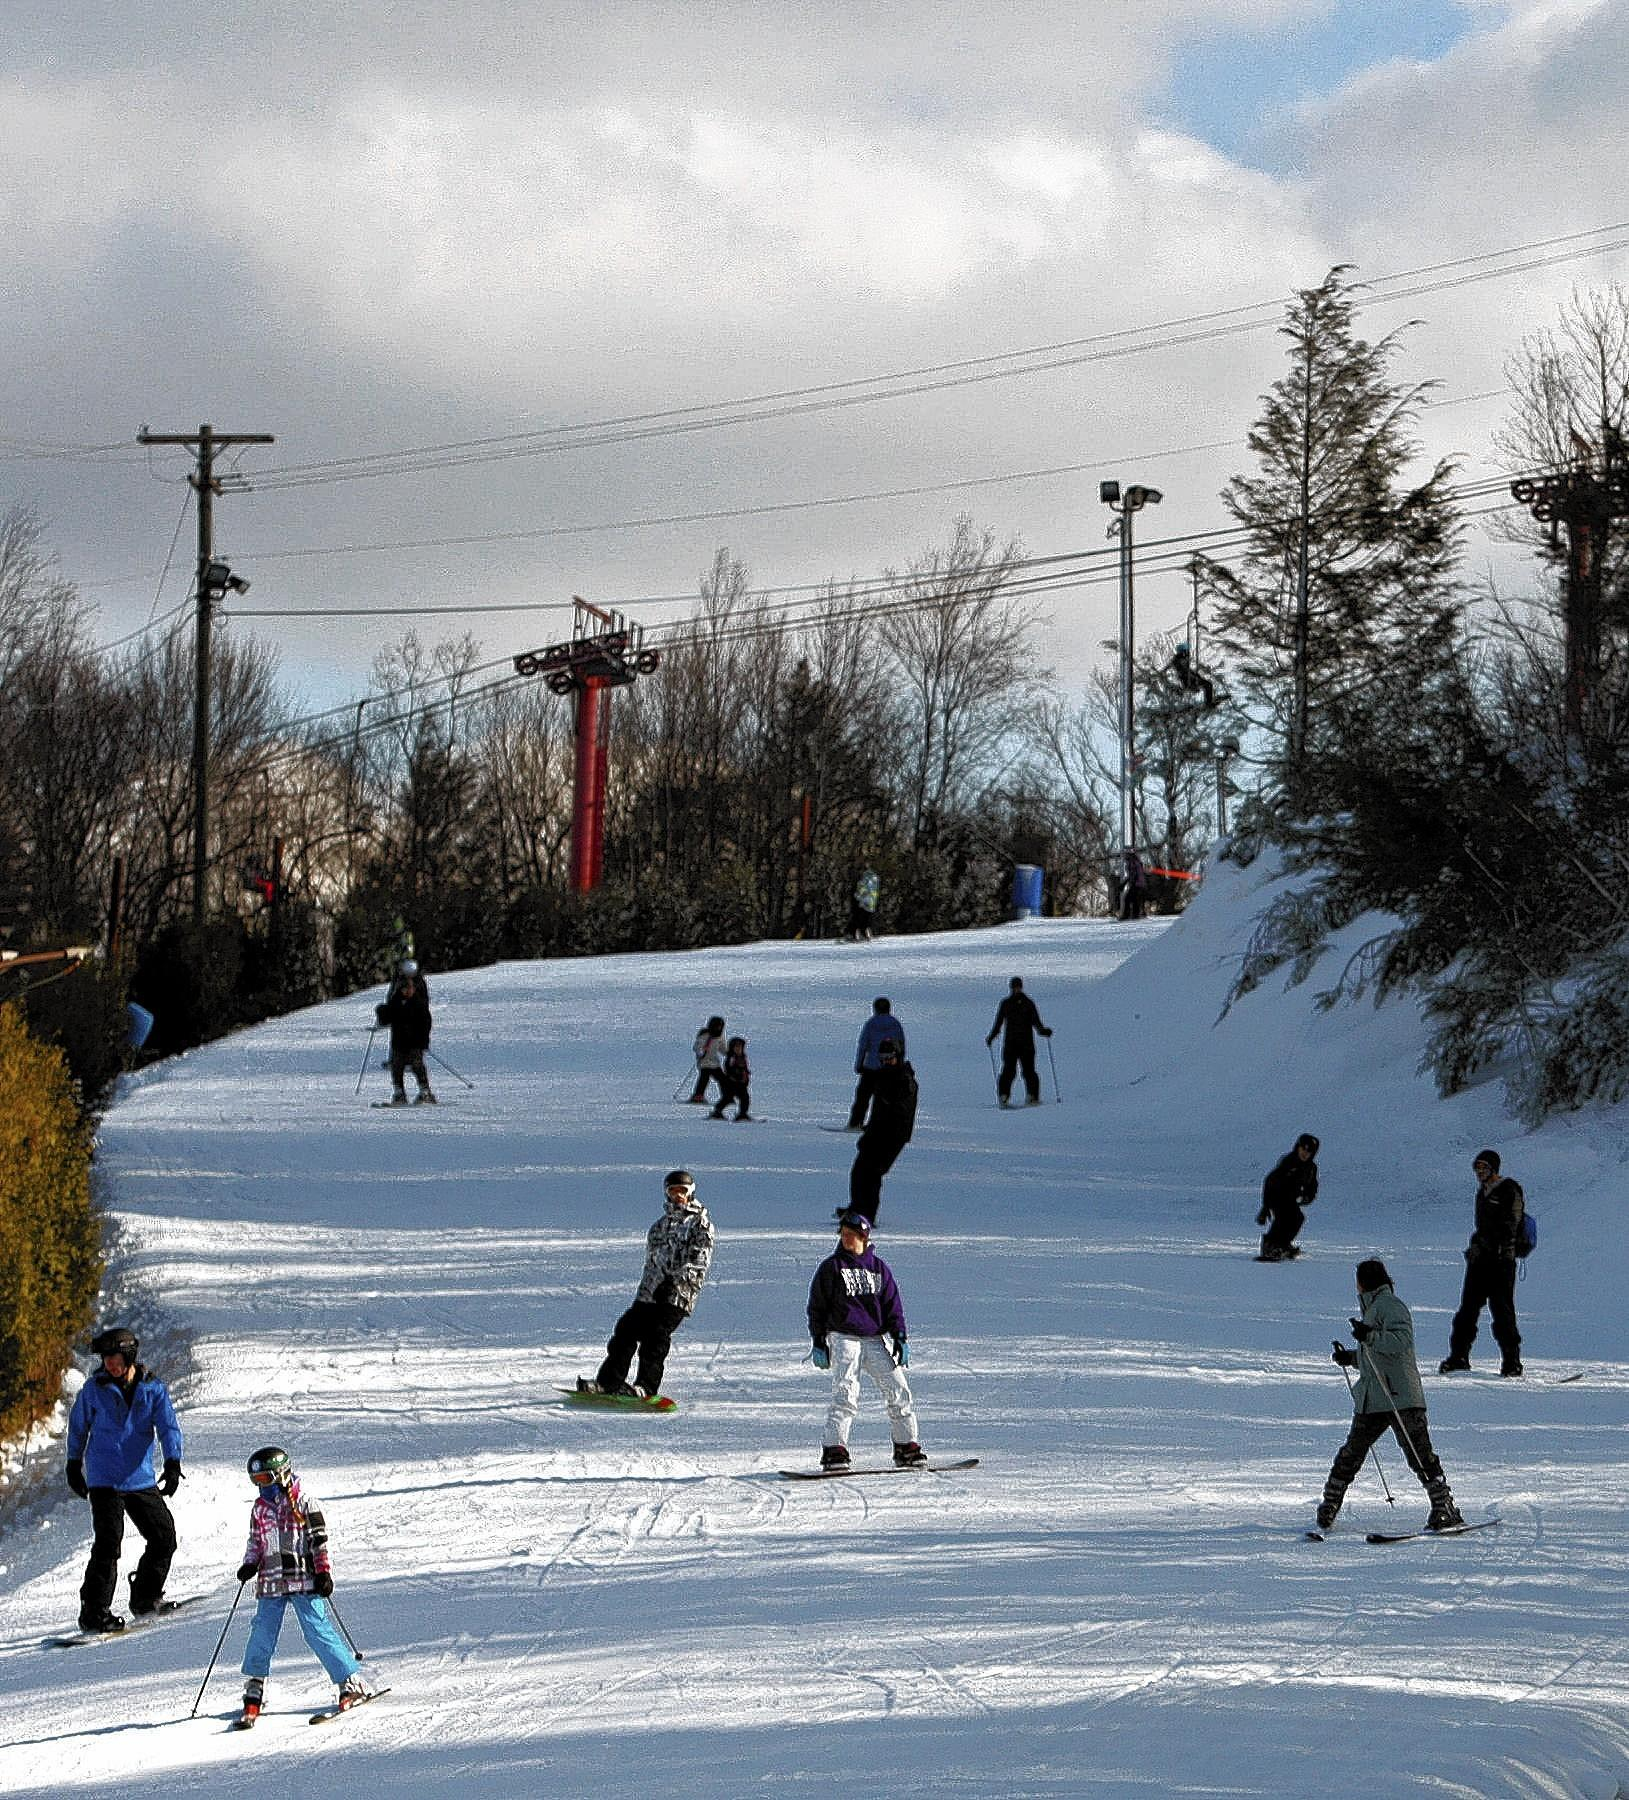 Skiers enjoy the slopes on the opening day of Blue Mountain's current season in November. Most of them had to pay, but those over 70 skied for free.